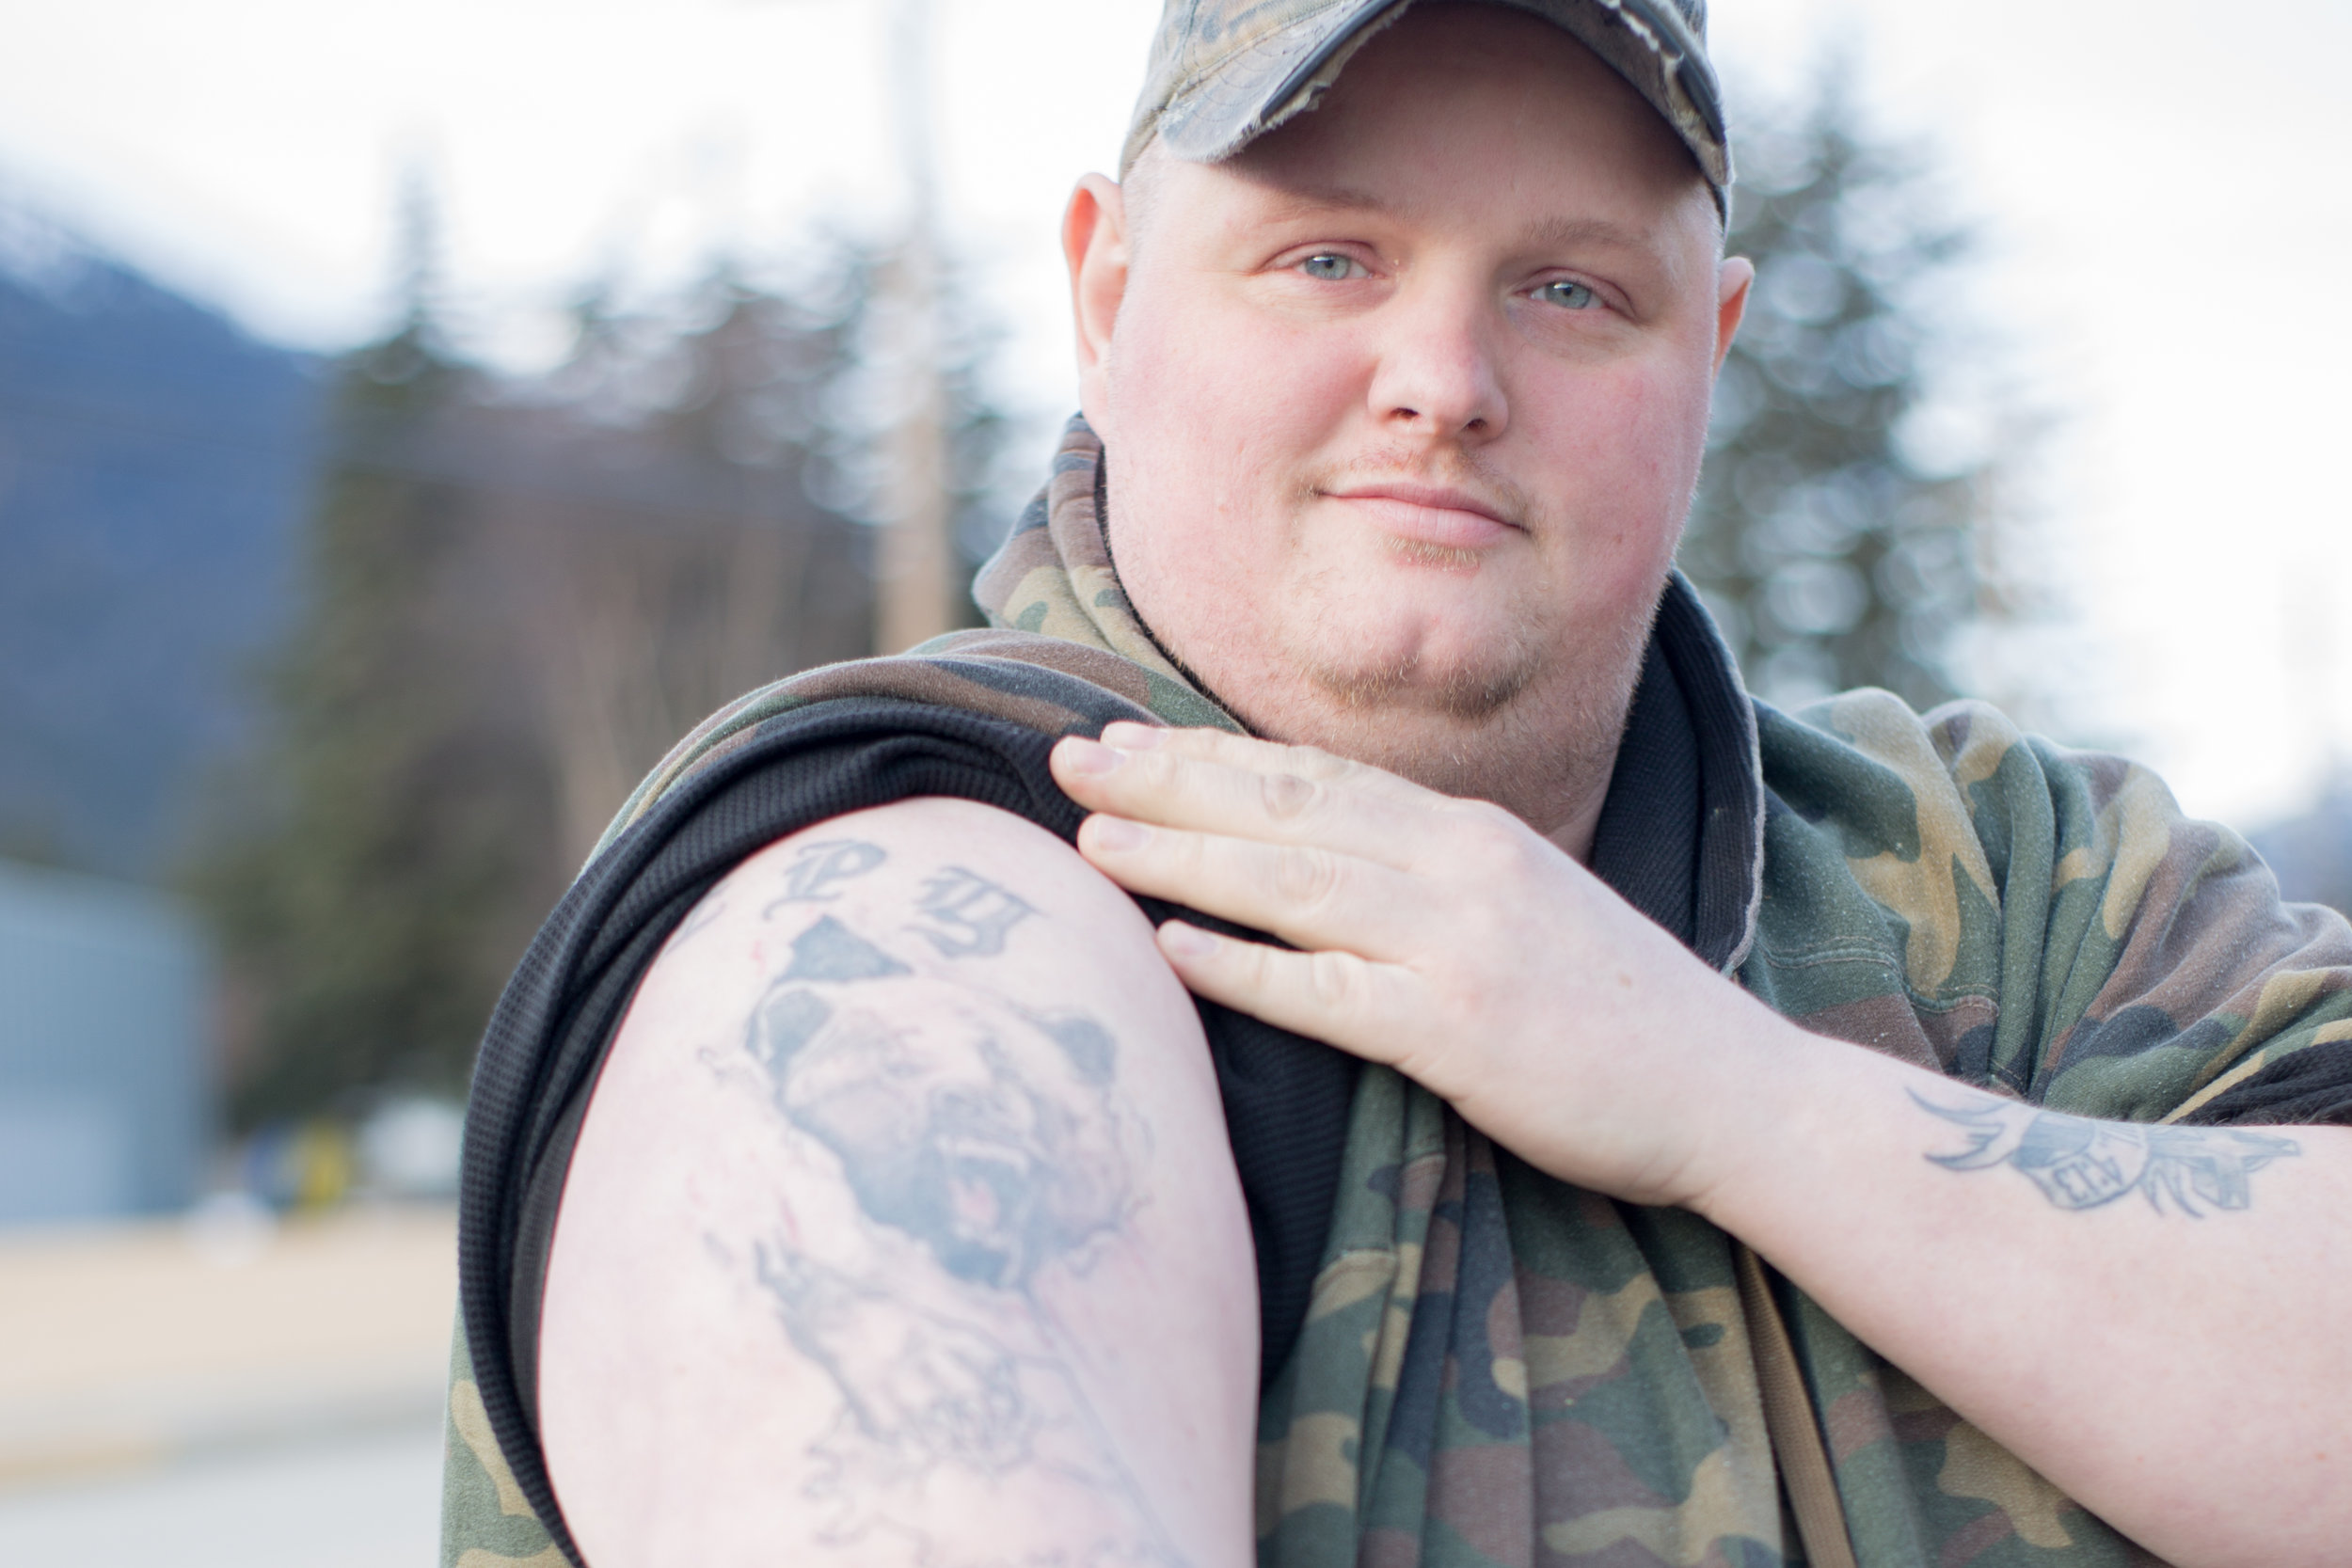 This is Brandon, he has lived in Skagway most of his life, 32 years. He is a high-level Alaskan.